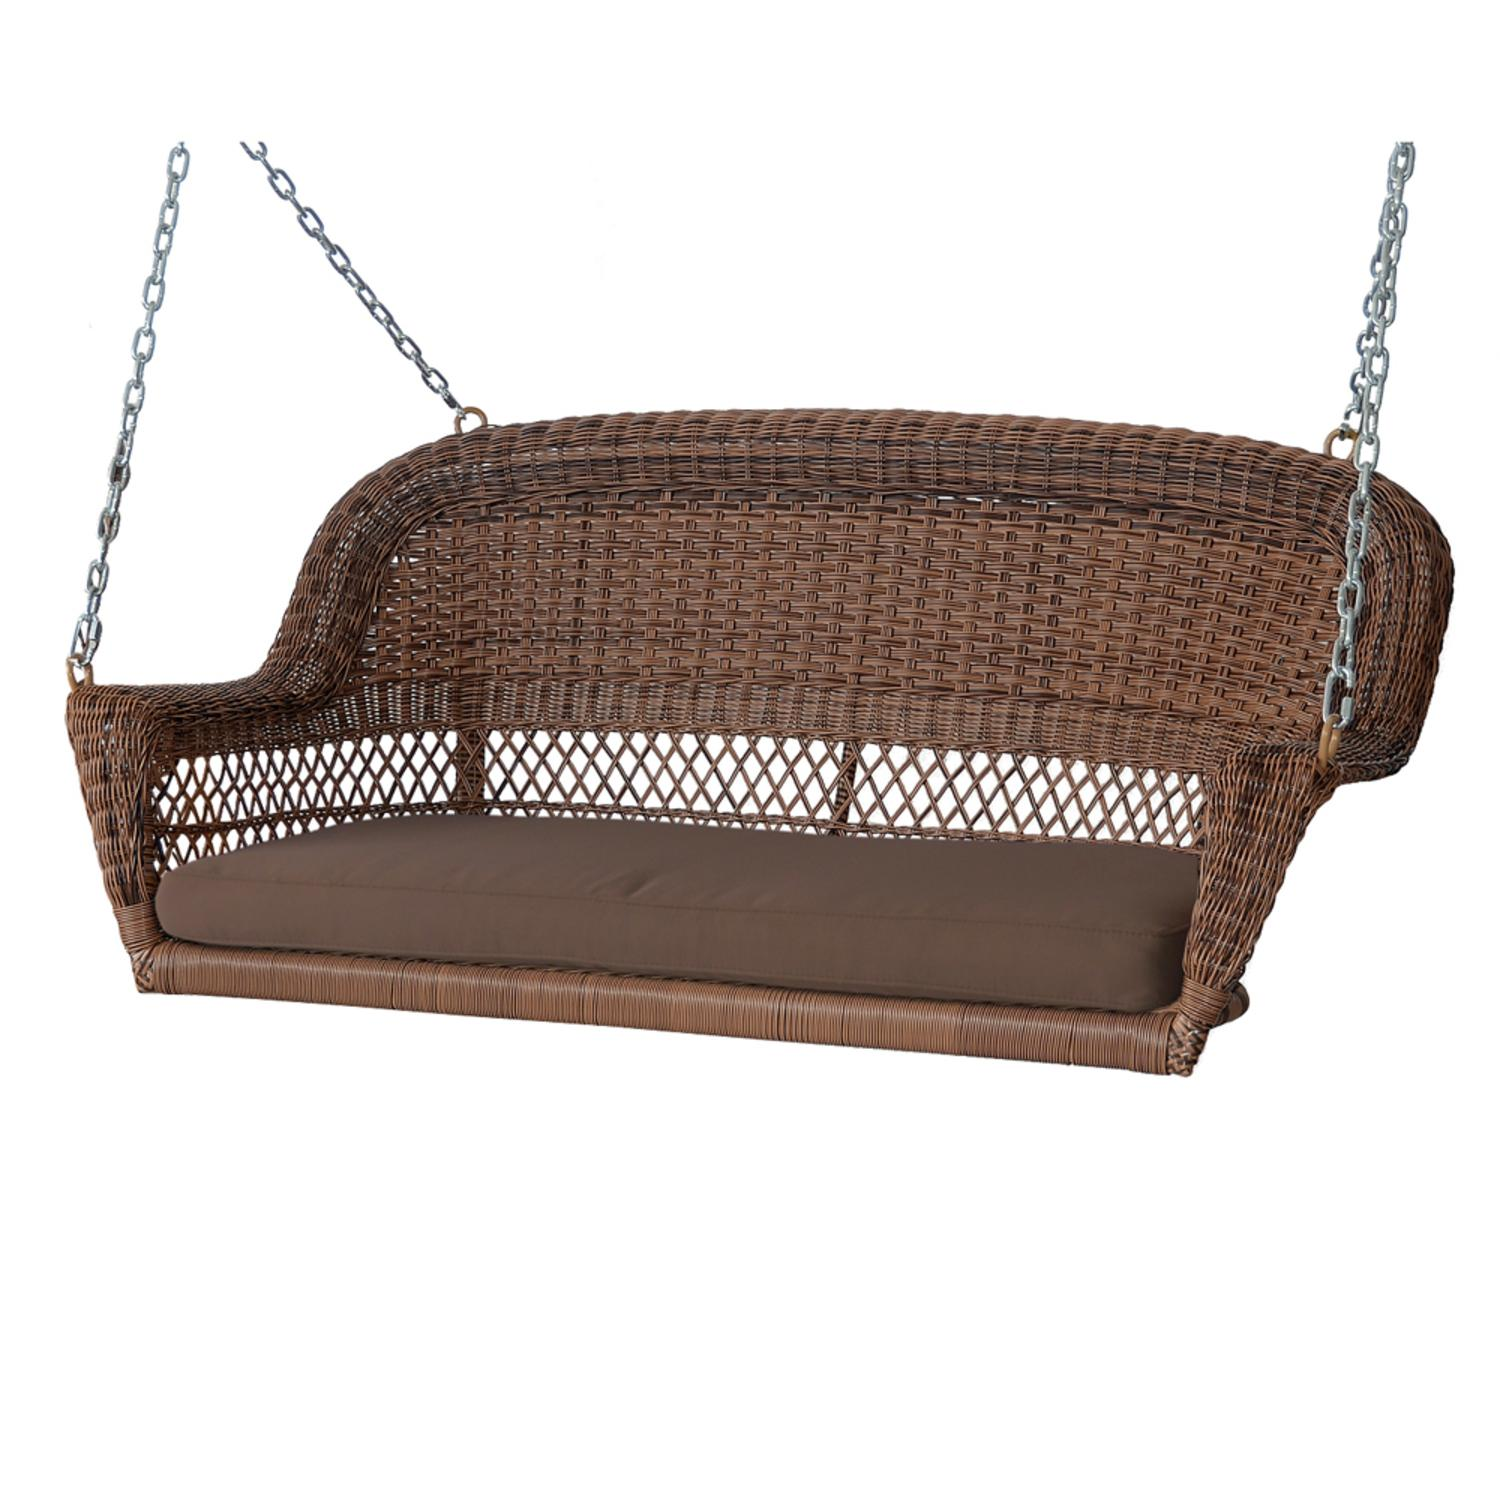 "51.5"" Hand Woven Honey Resin Wicker Outdoor Porch Swing with Brown Cushion by Porch Swings"